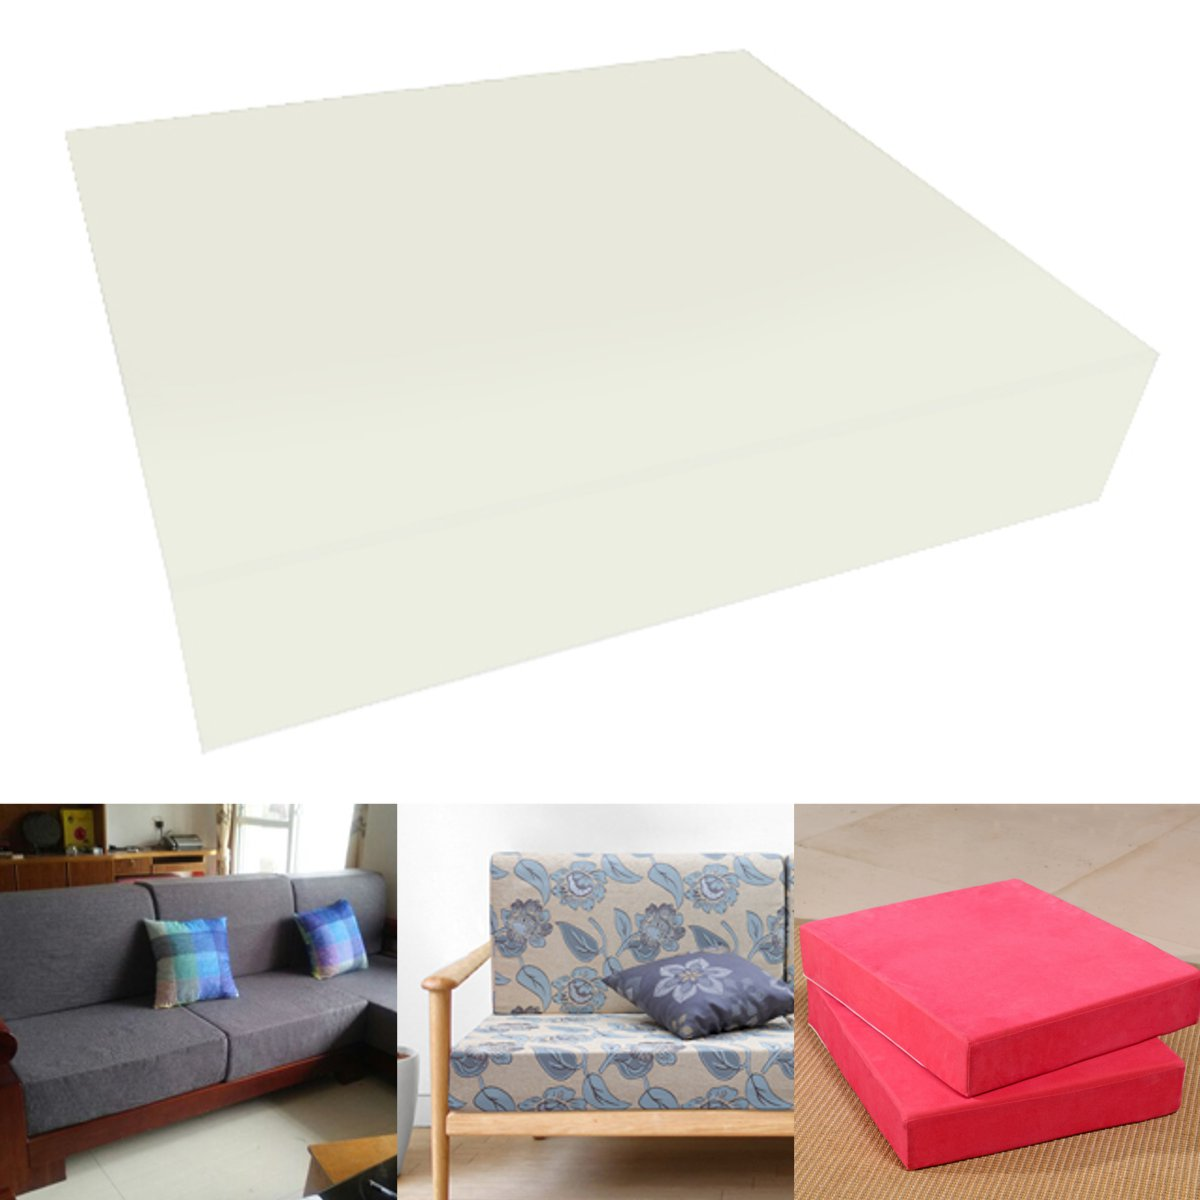 Replacement Seat Cushions Foam